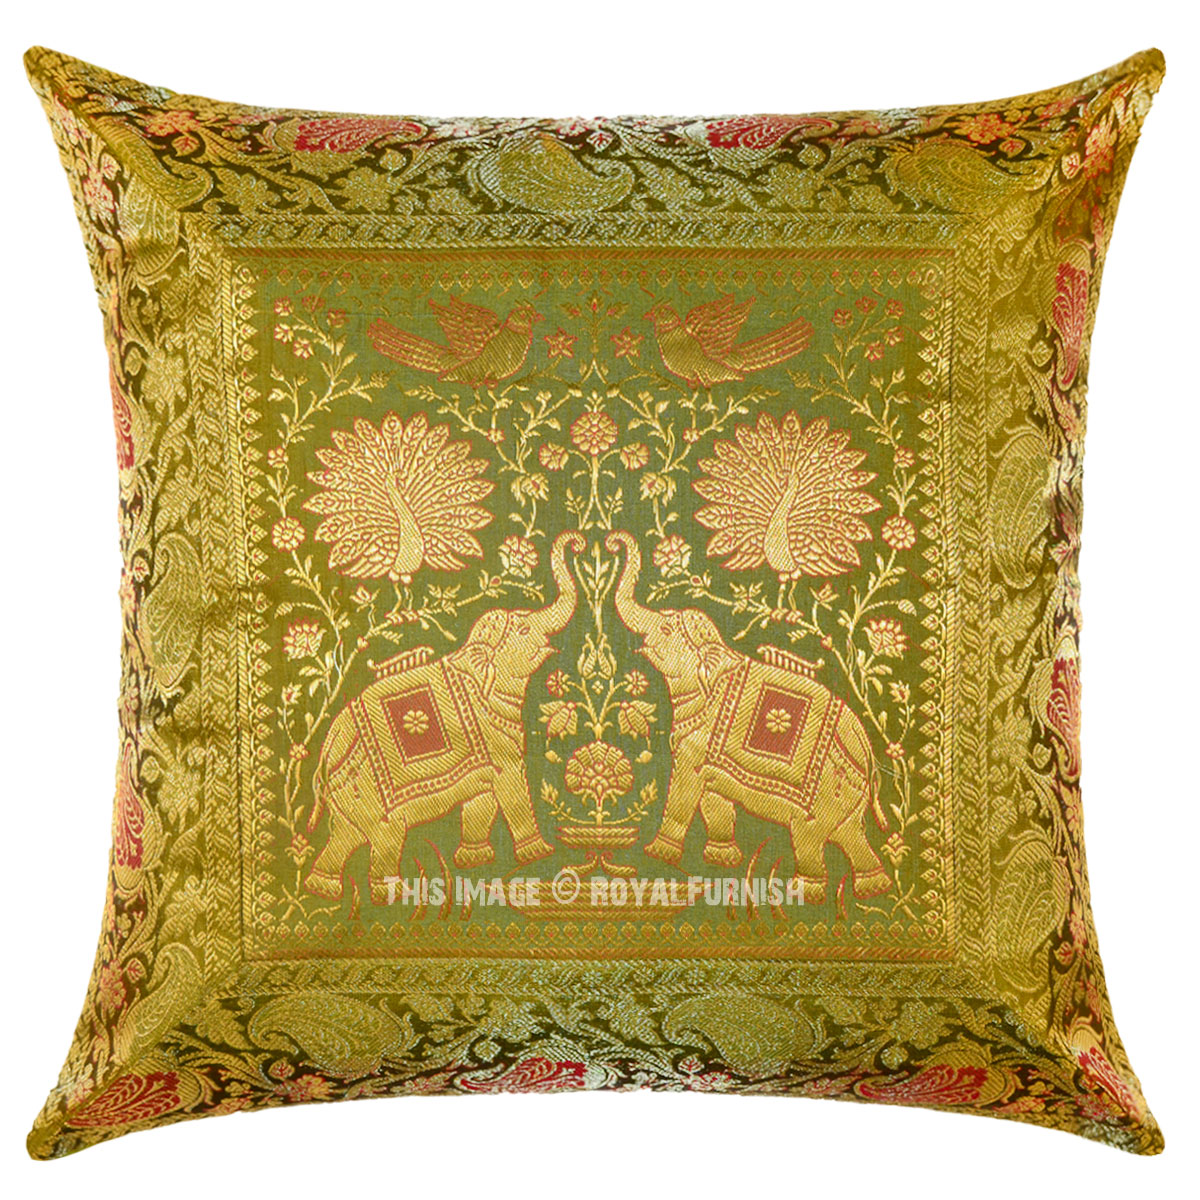 Green Silk Throw Pillow : Green Two Elephants Featuring Silk Throw Pillow Sham 16X16 - RoyalFurnish.com